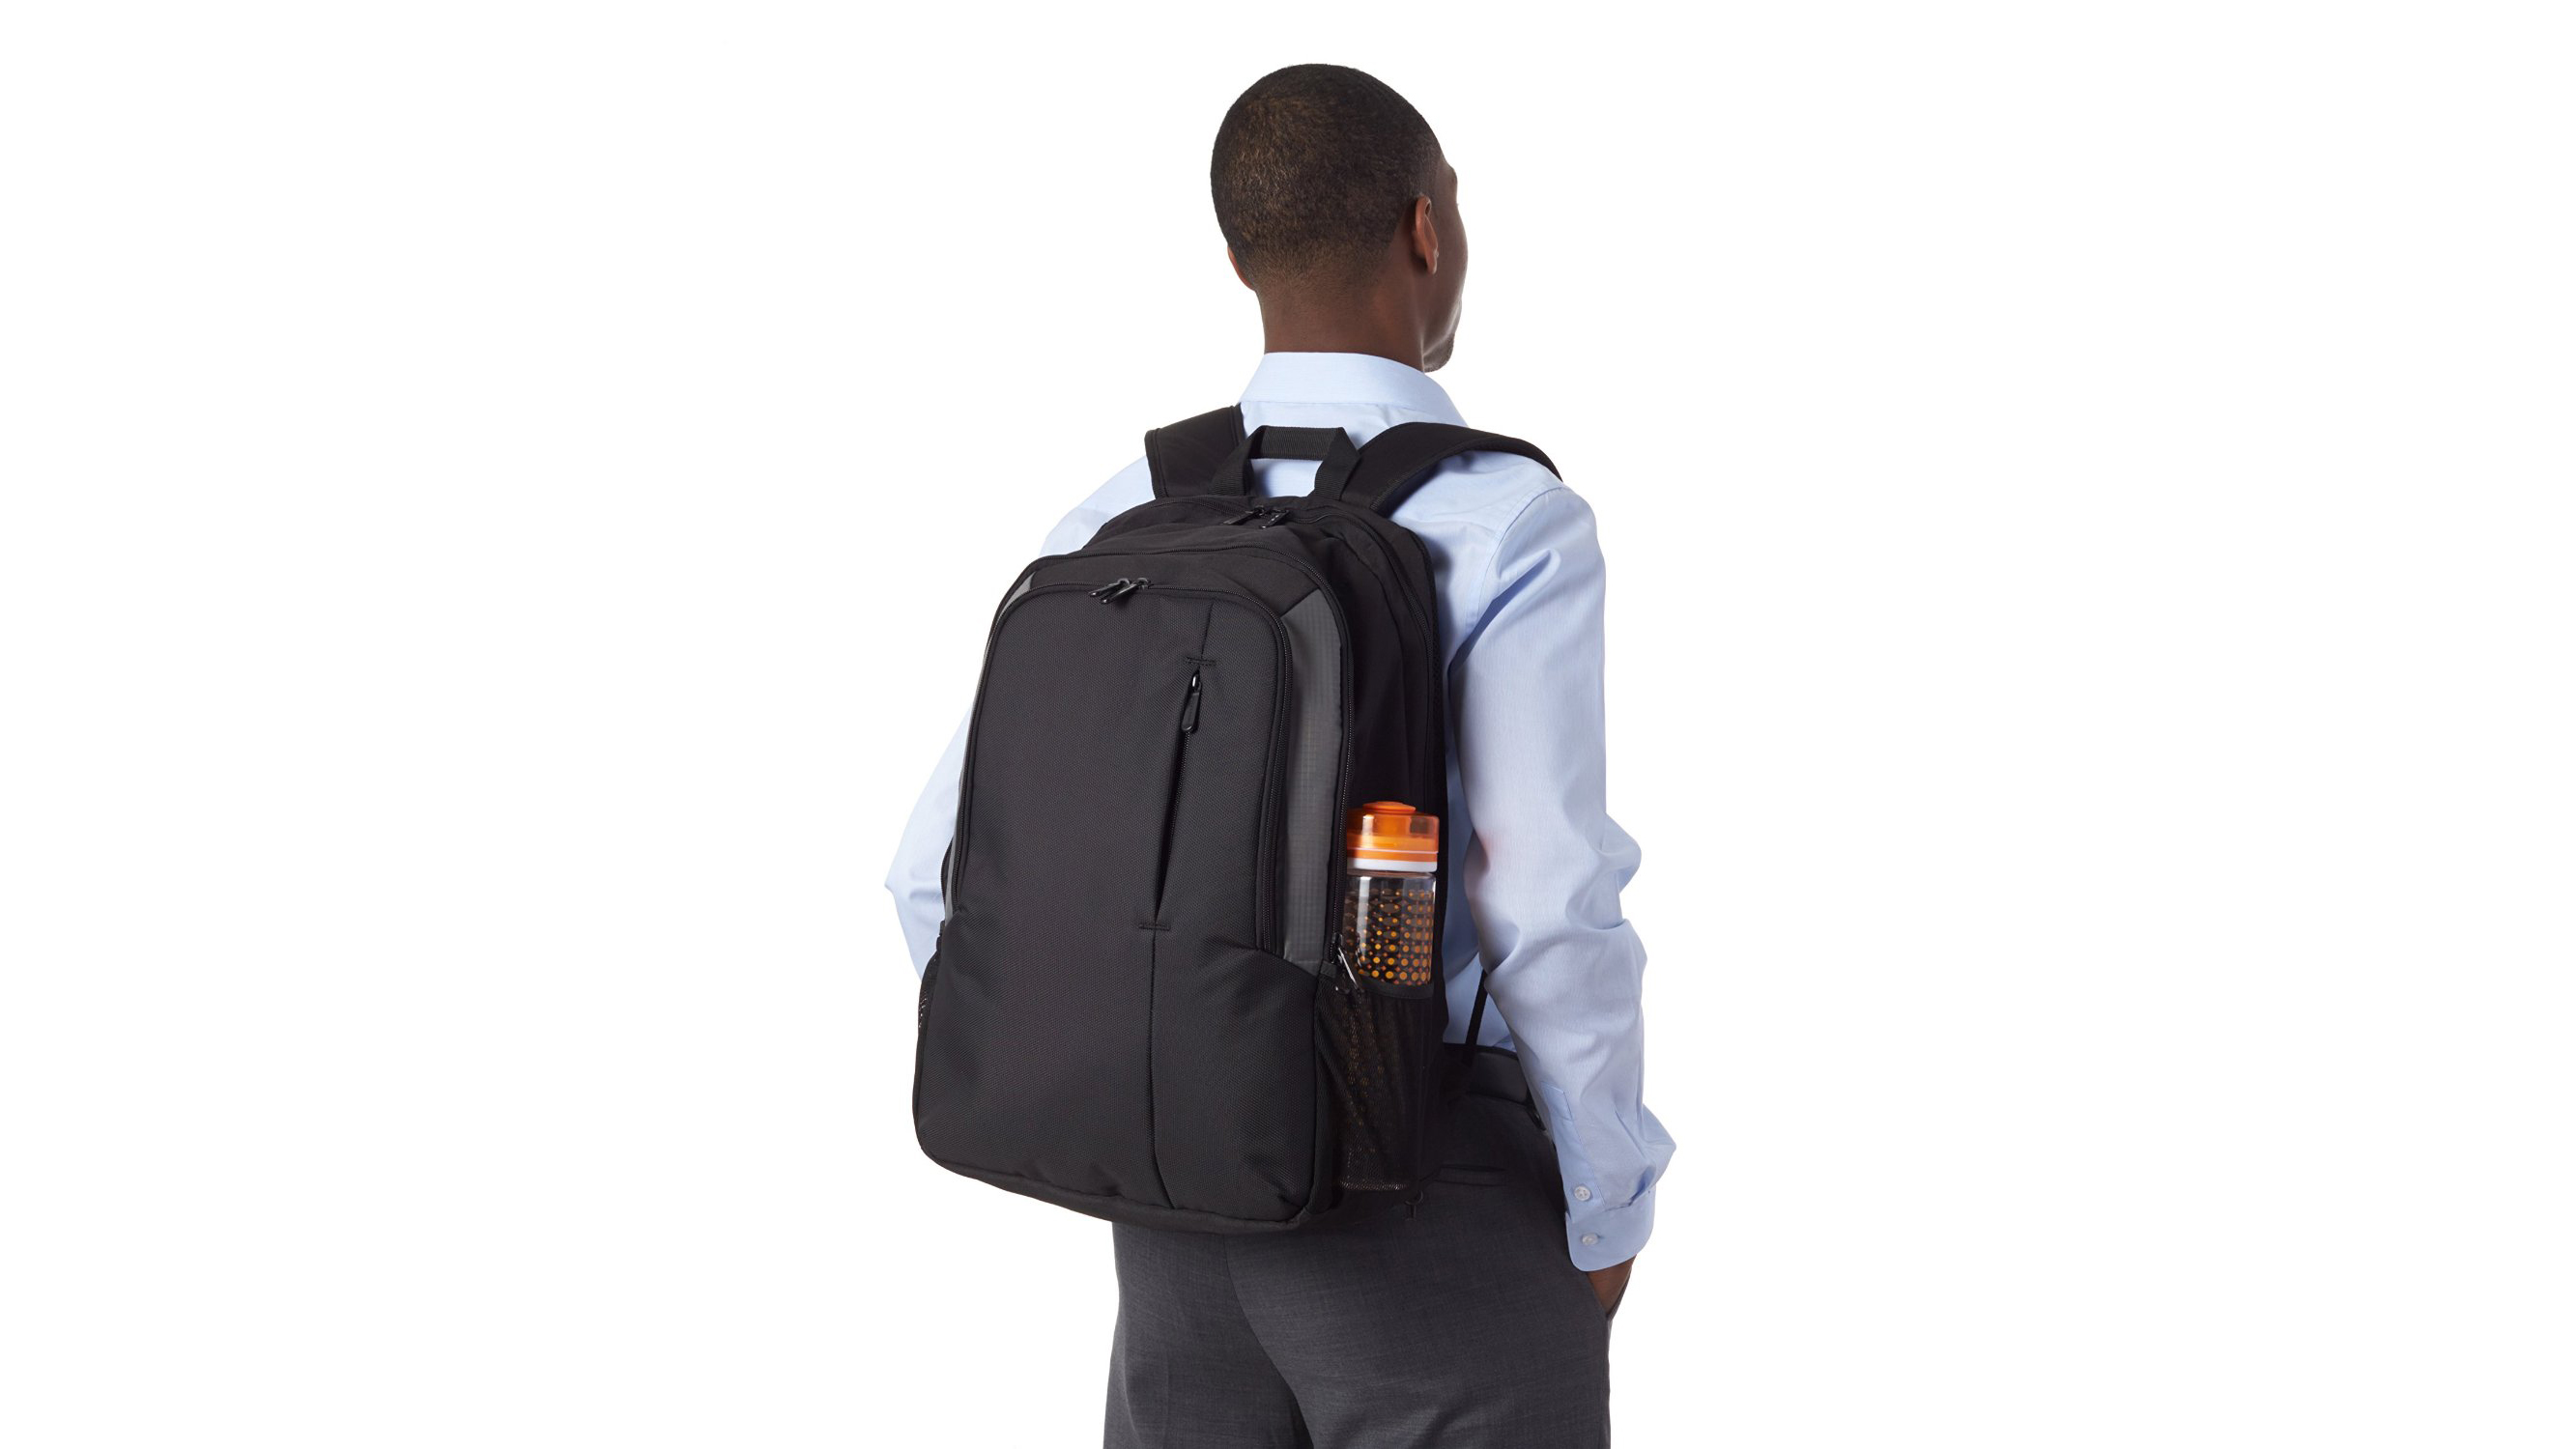 5jq8VAMrCLYZNbekep7ioC - The 5 best back to school backpacks for 2019